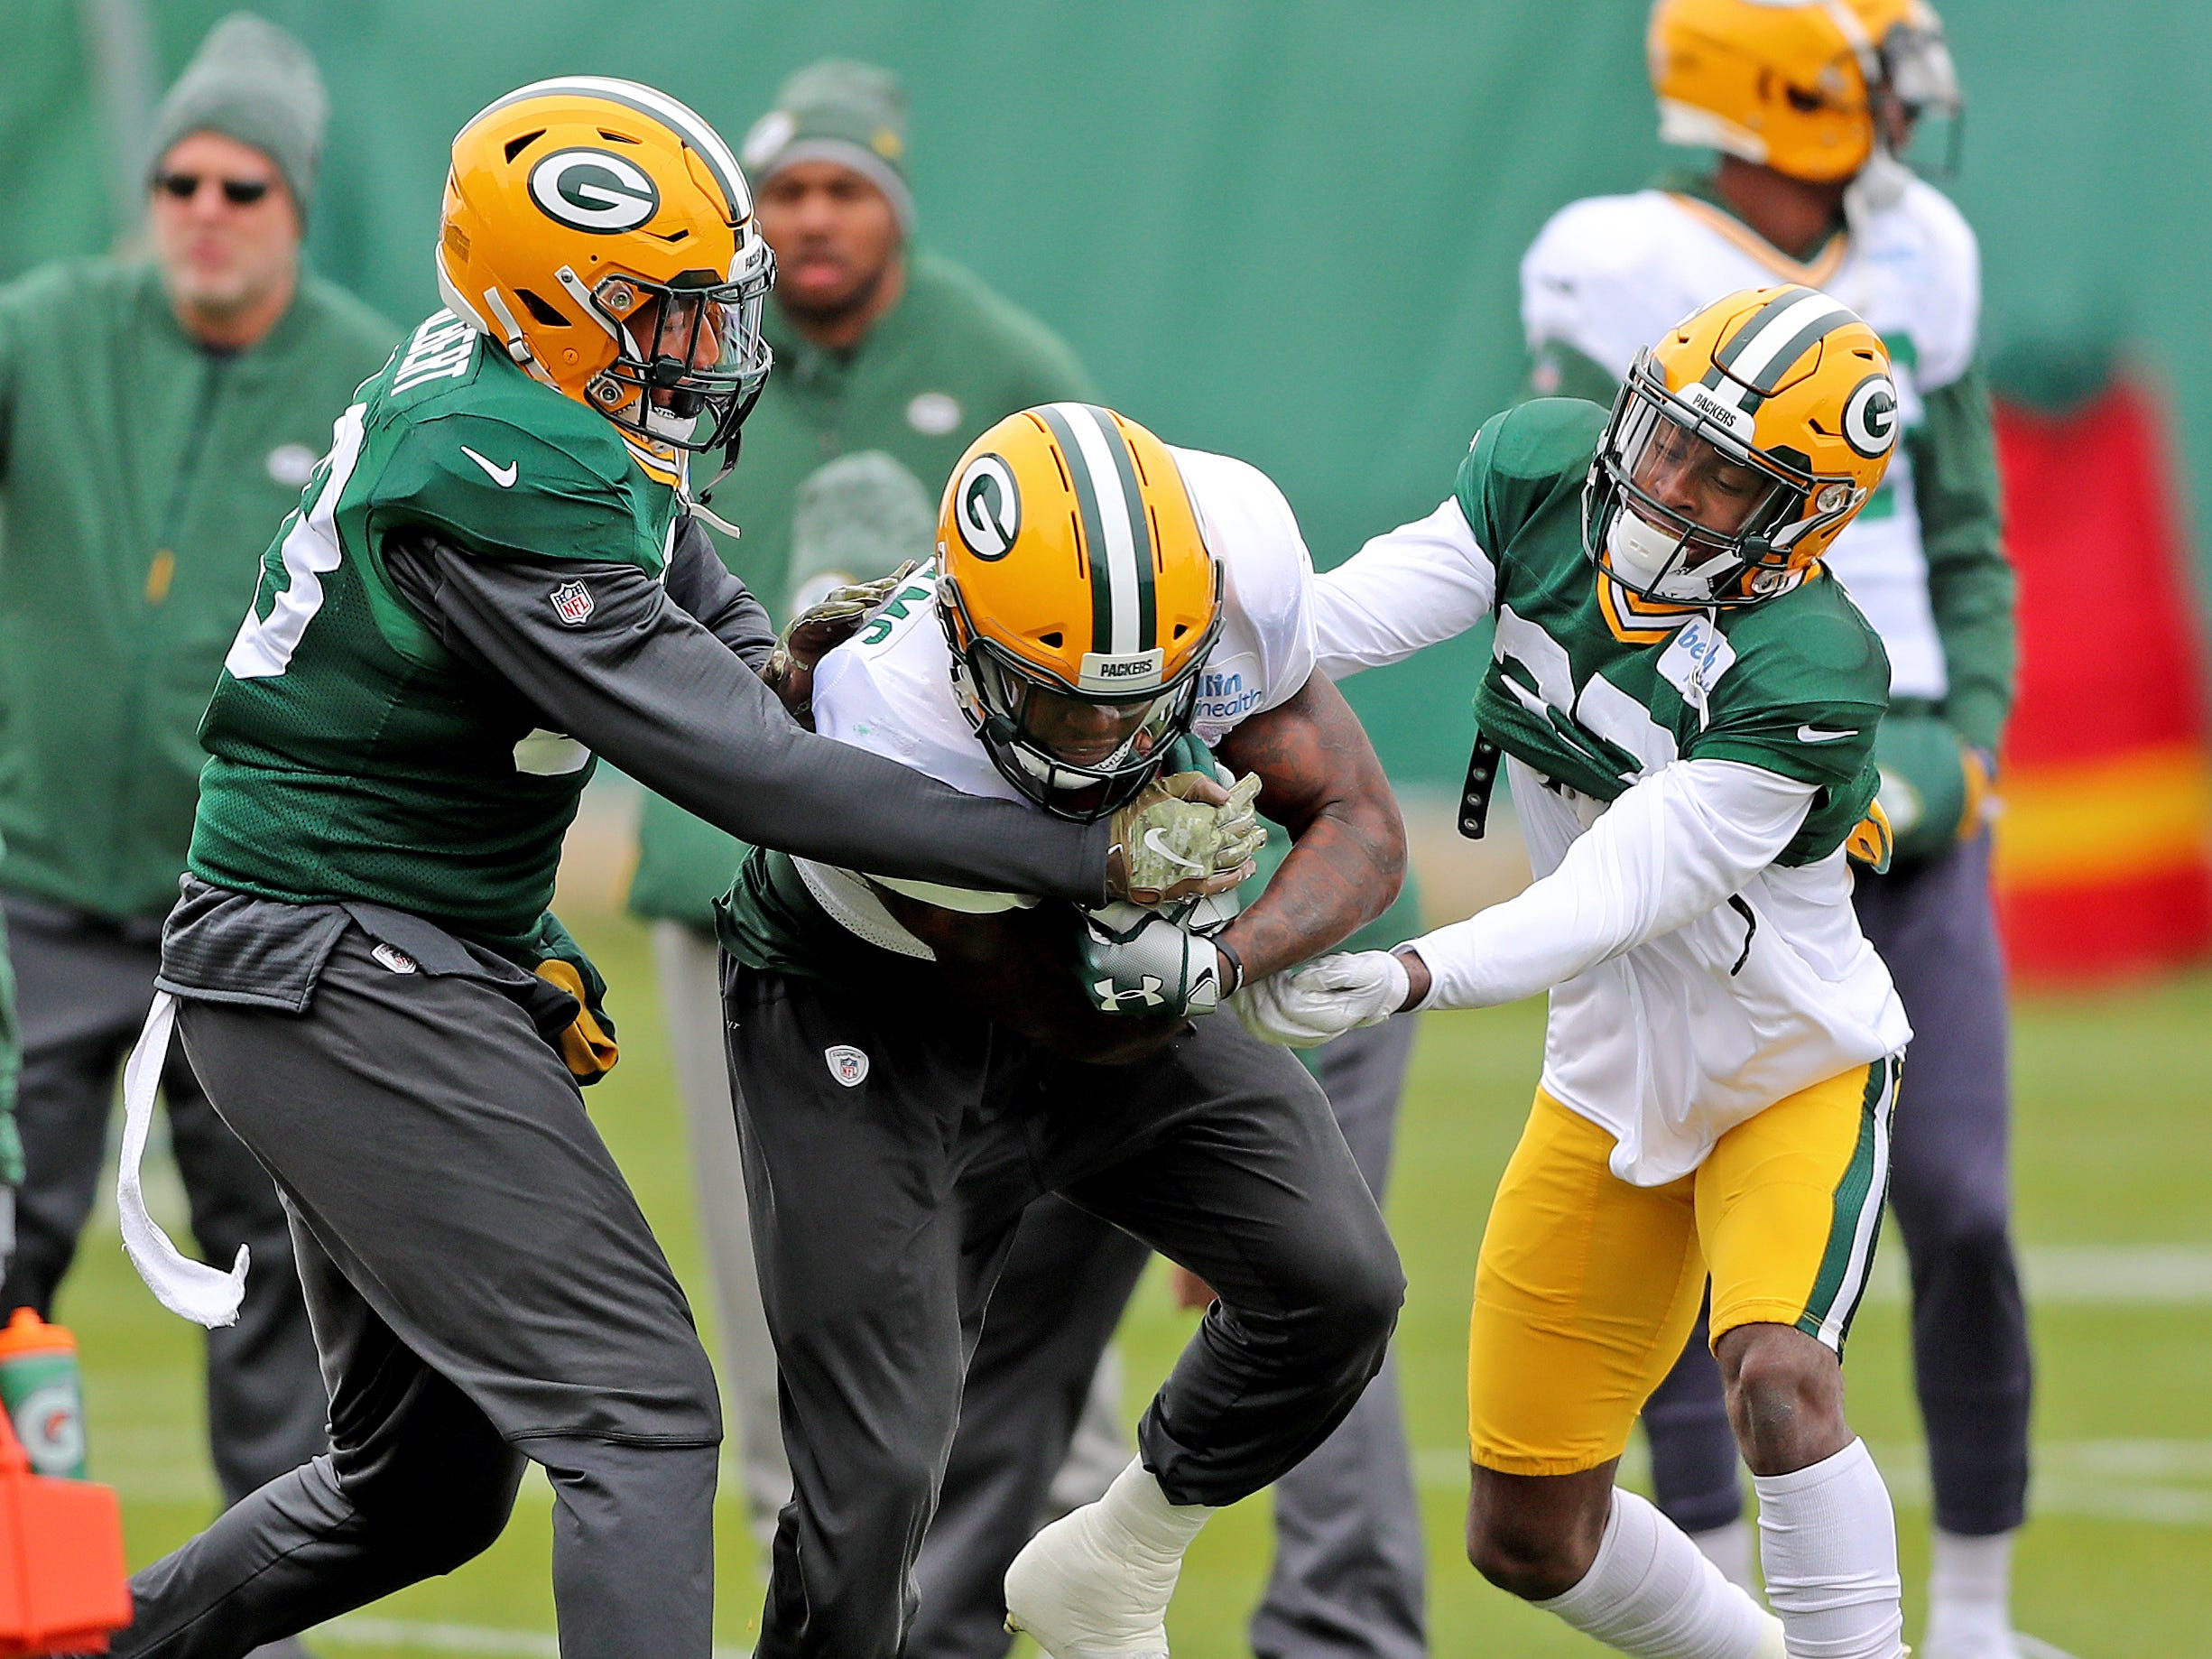 Green Bay Packers running back Jamaal Williams (30) battles linebacker Reggie Gilbert (93) and cornerback Josh Jackson (37) during practice Thursday, November 8, 2018 at the Don Hutson Center in Ashwaubenon, Wis.